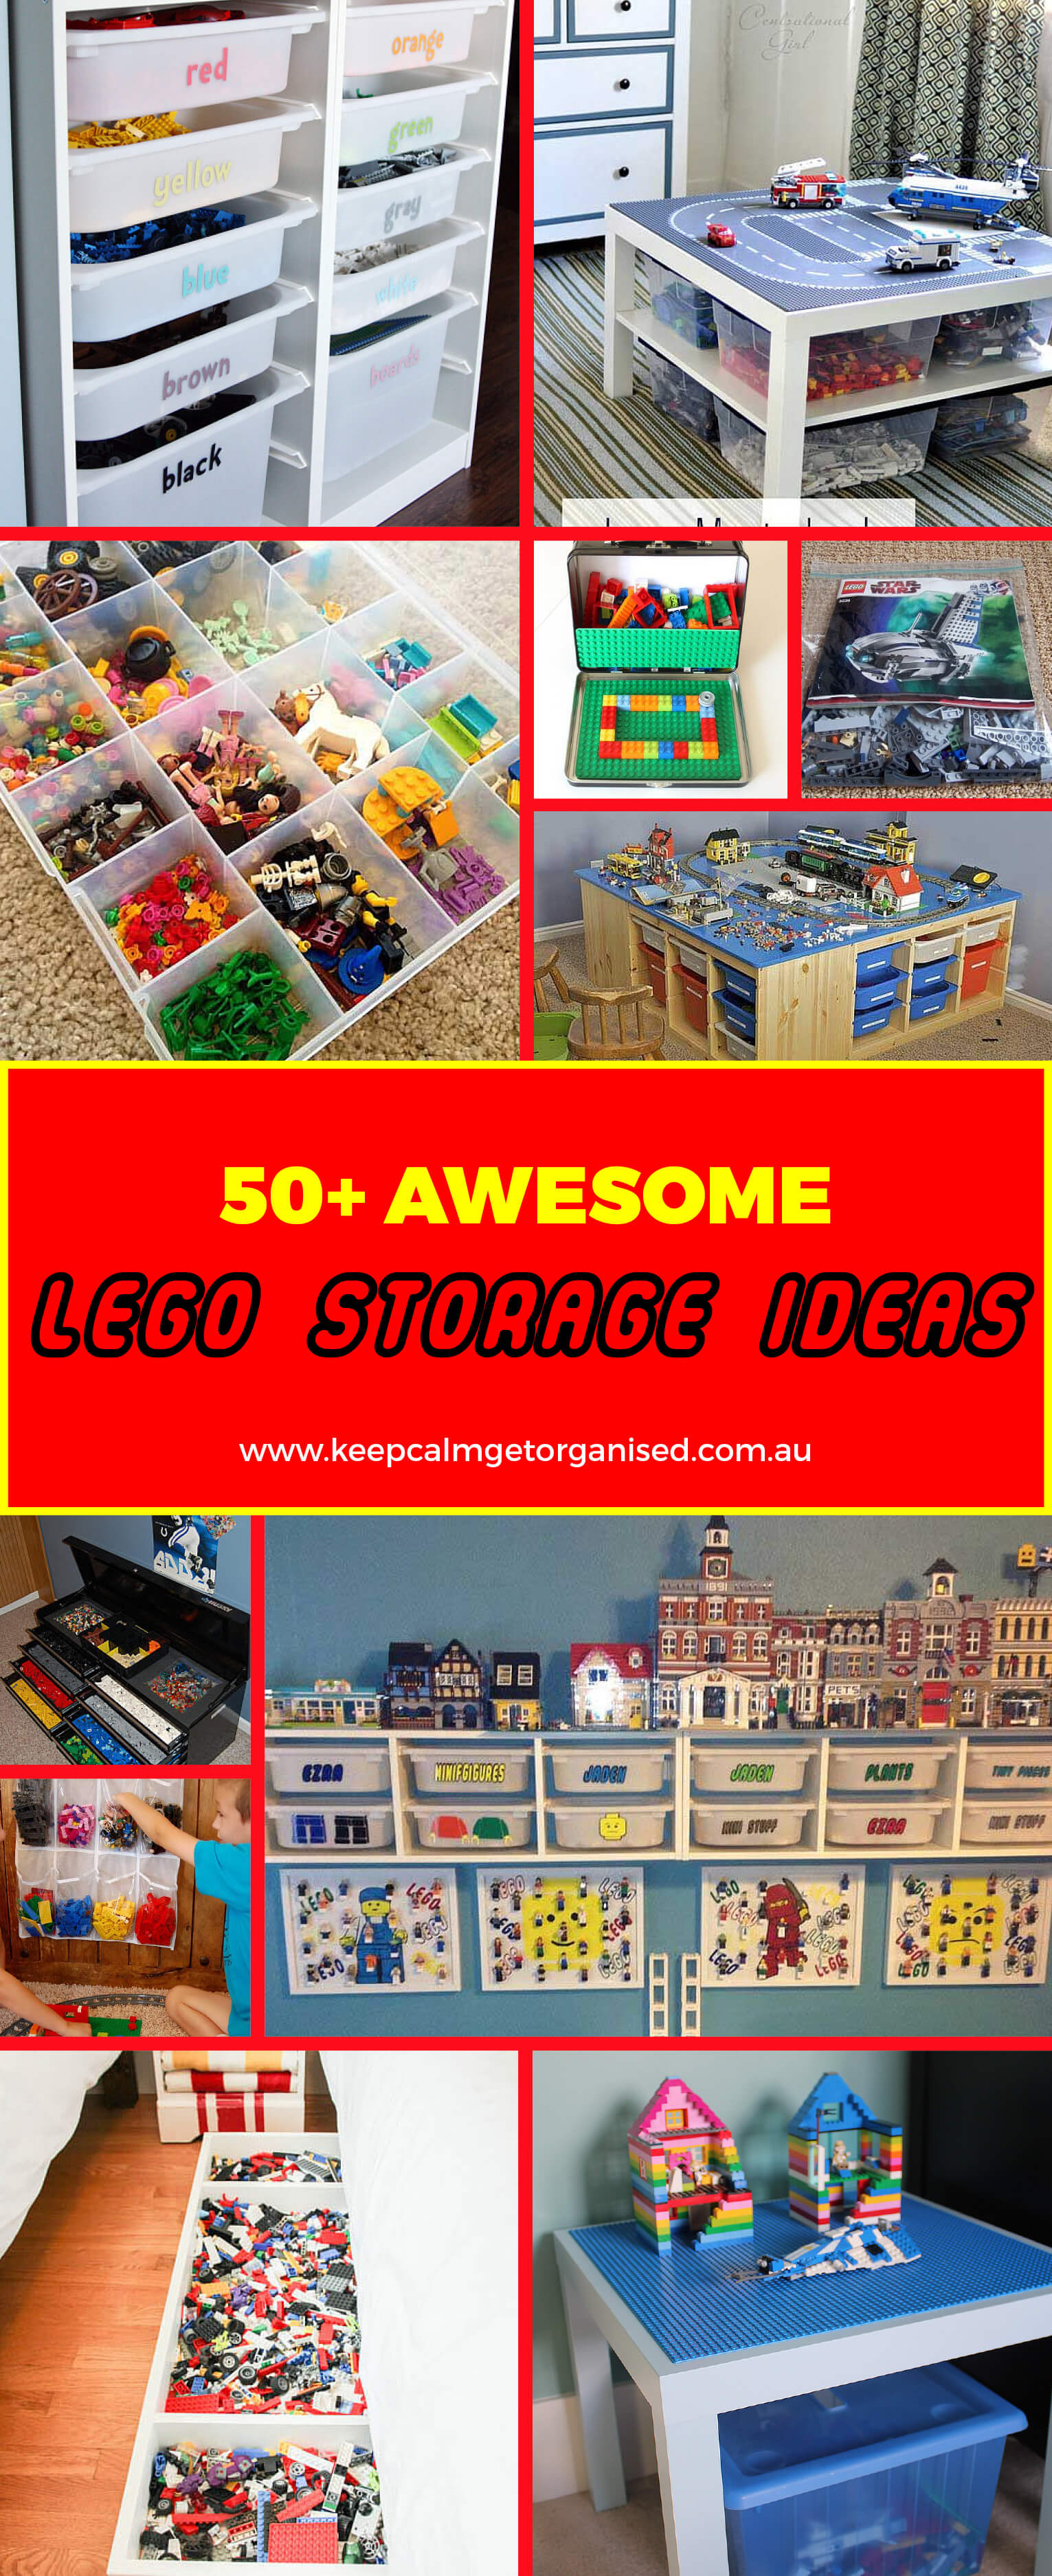 50+ Awesome Lego storage ideas for clever Lego organisation